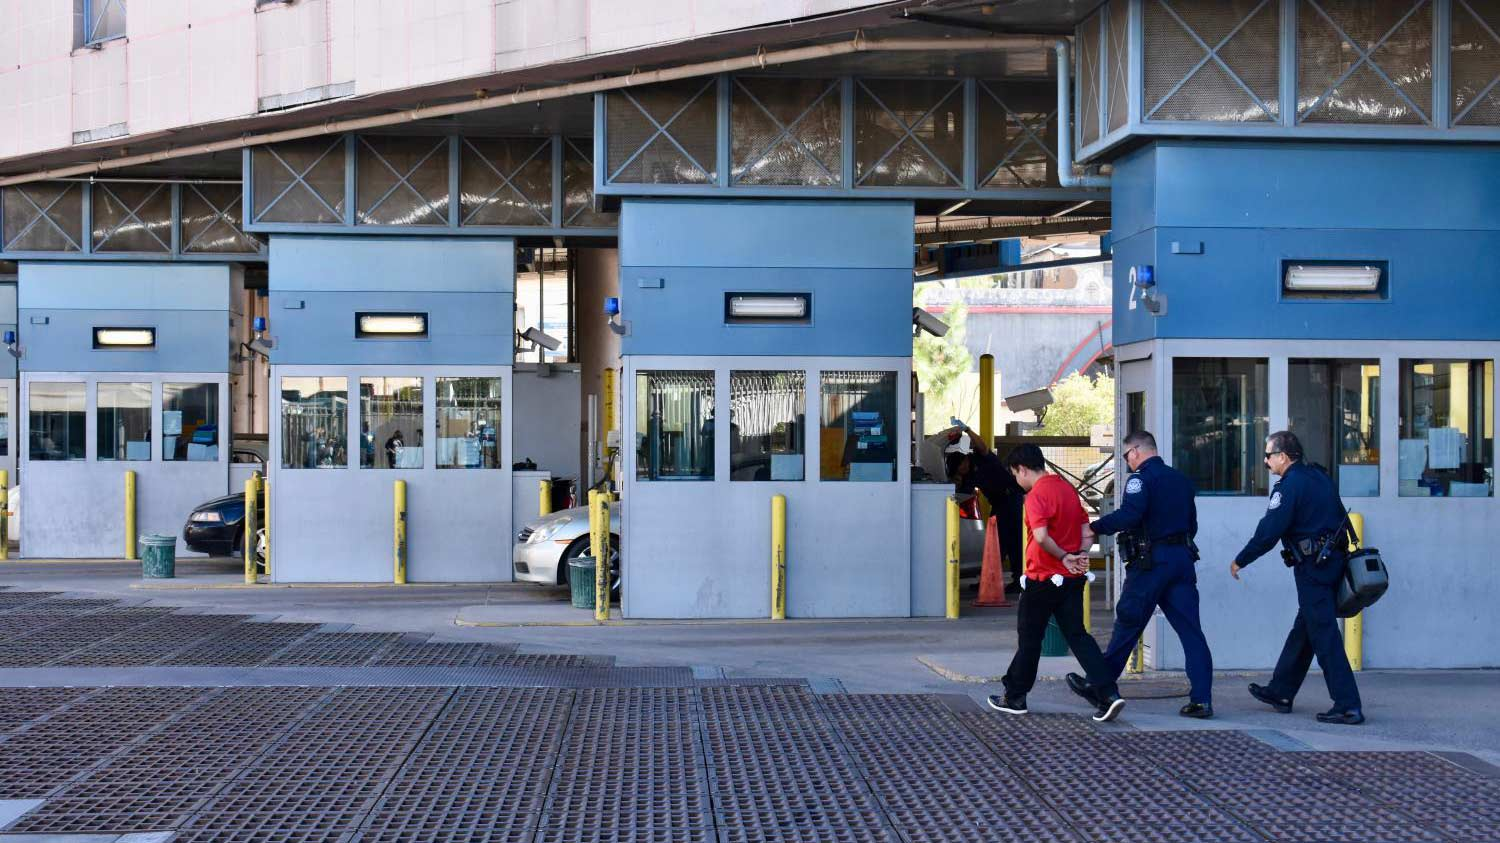 Customs and Border Protection officers lead an unidentified man away in handcuffs at the Nogales downtown port of entry last Friday.